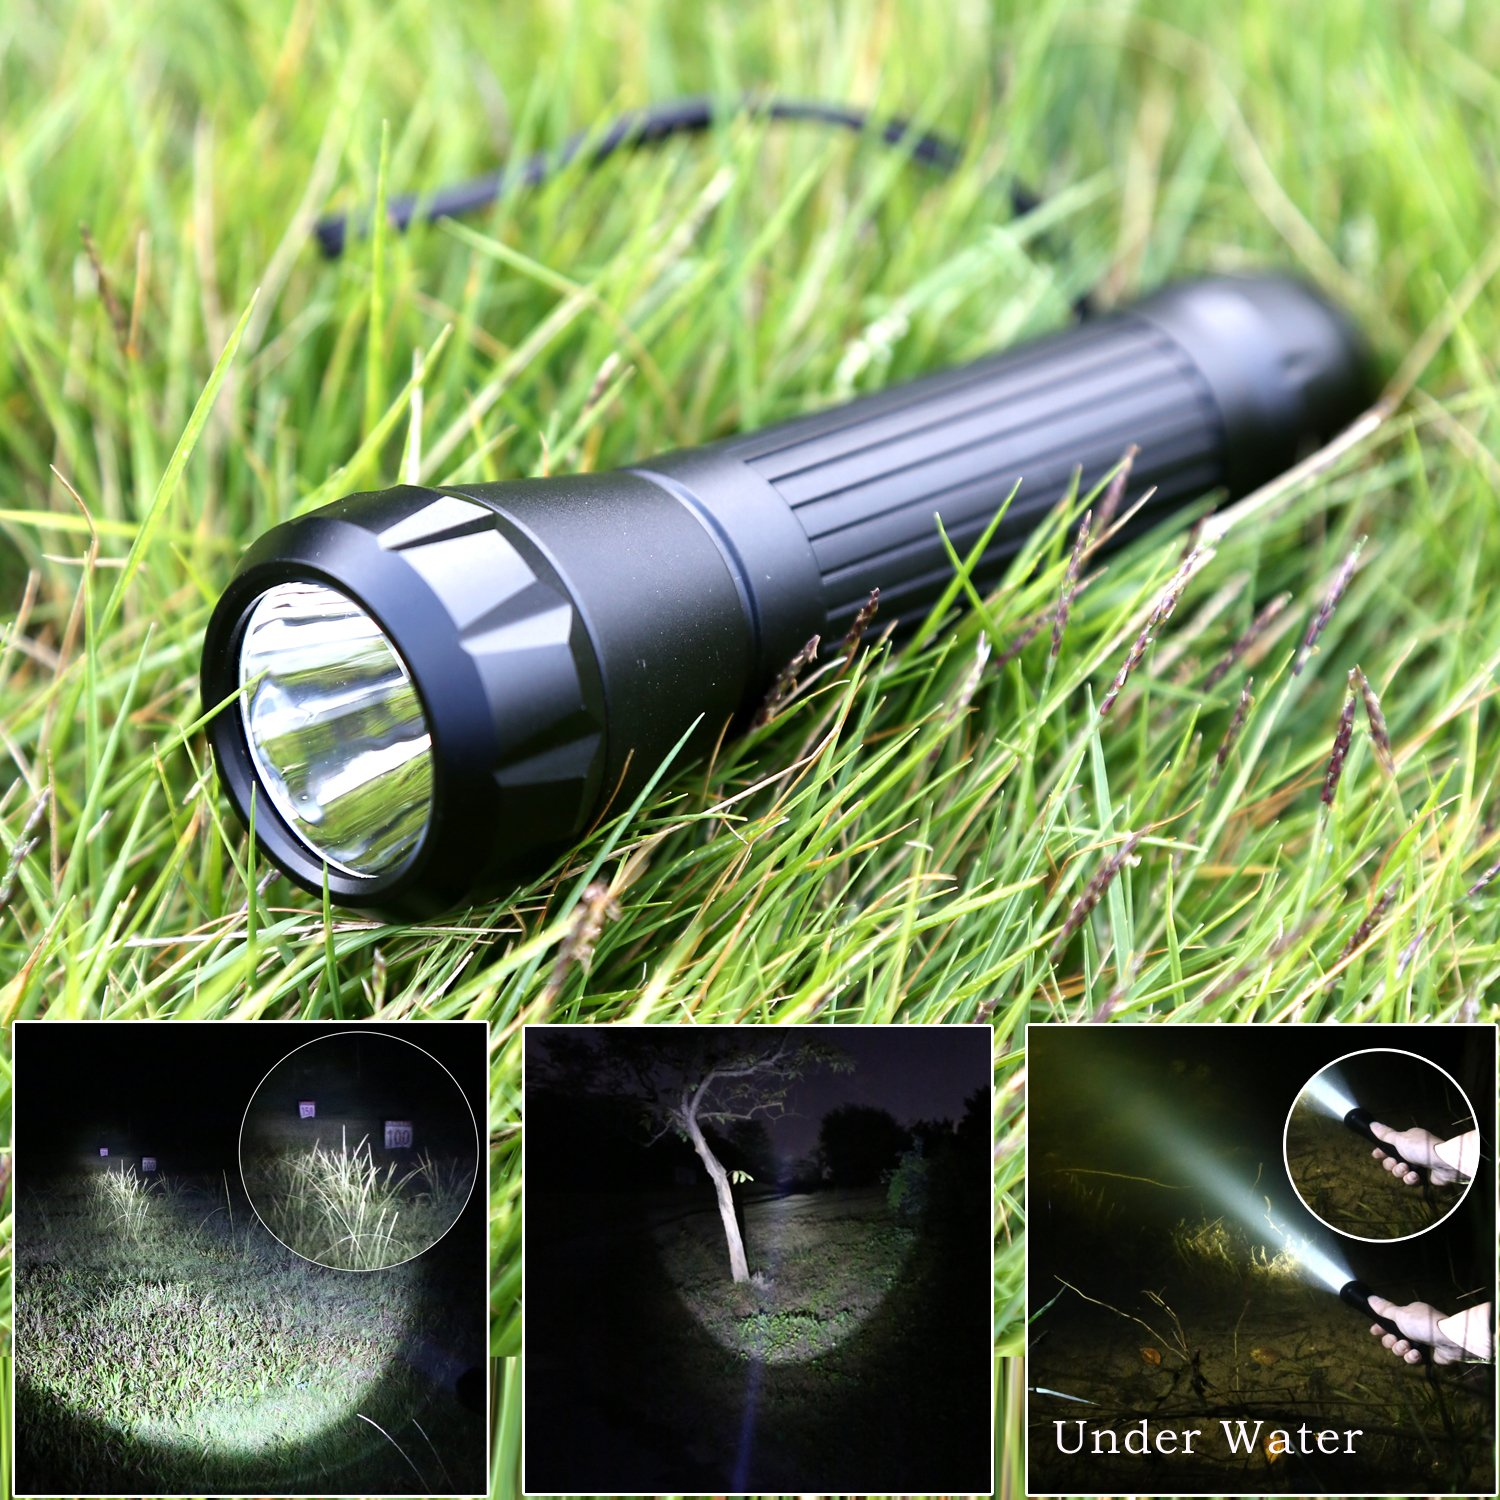 Kamisafe KM-8810 Cree XML Q5 5 Modes Compact LED Flashlight Torch Waterproof Outdoor Flashlight with Wrist Strap